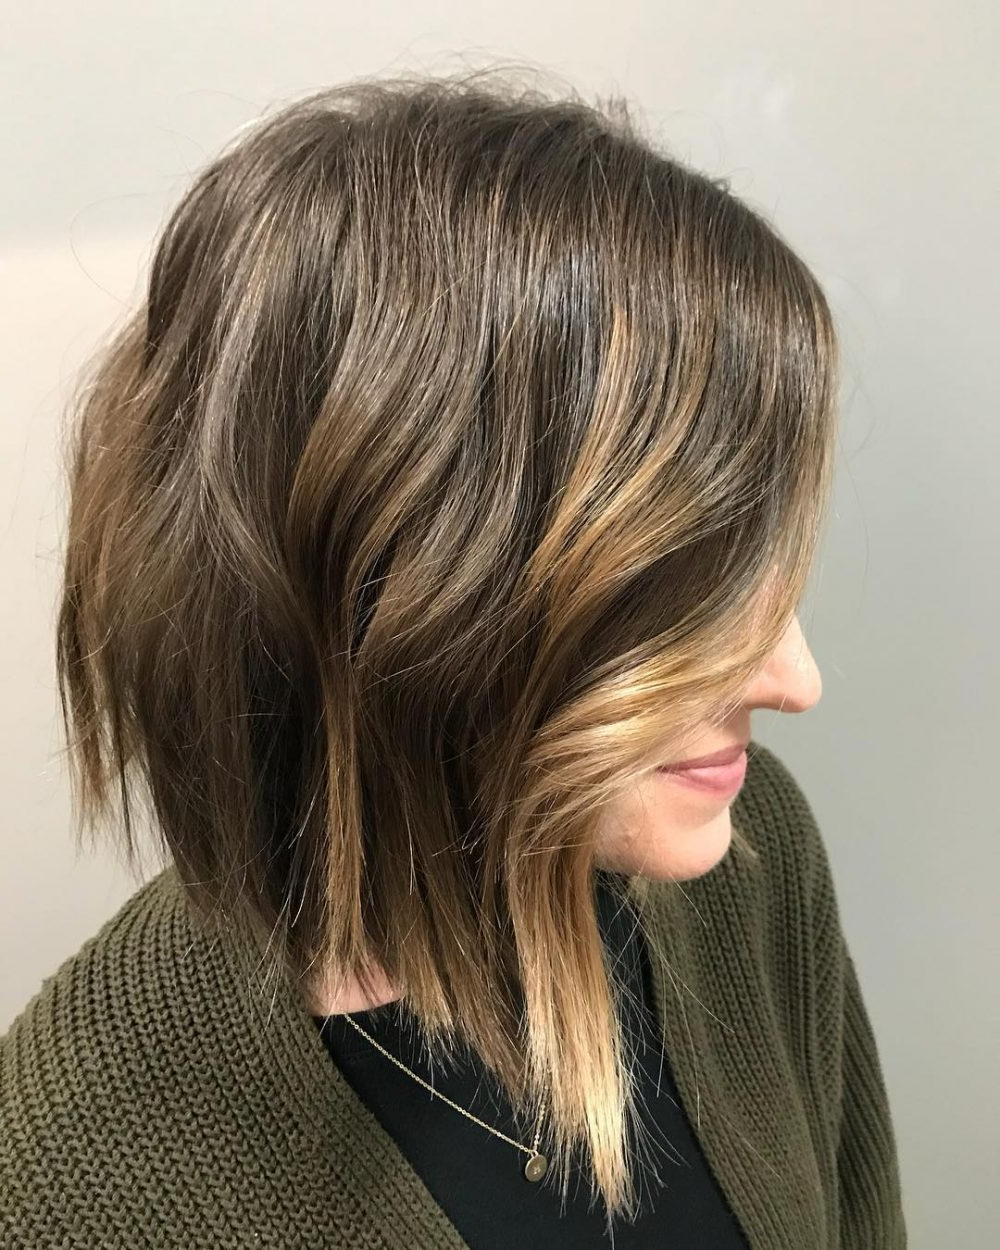 45 Chic Choppy Bob Hairstyles For 2019 With Regard To Most Current Shoulder Length Haircuts With Jagged Ends (View 9 of 20)